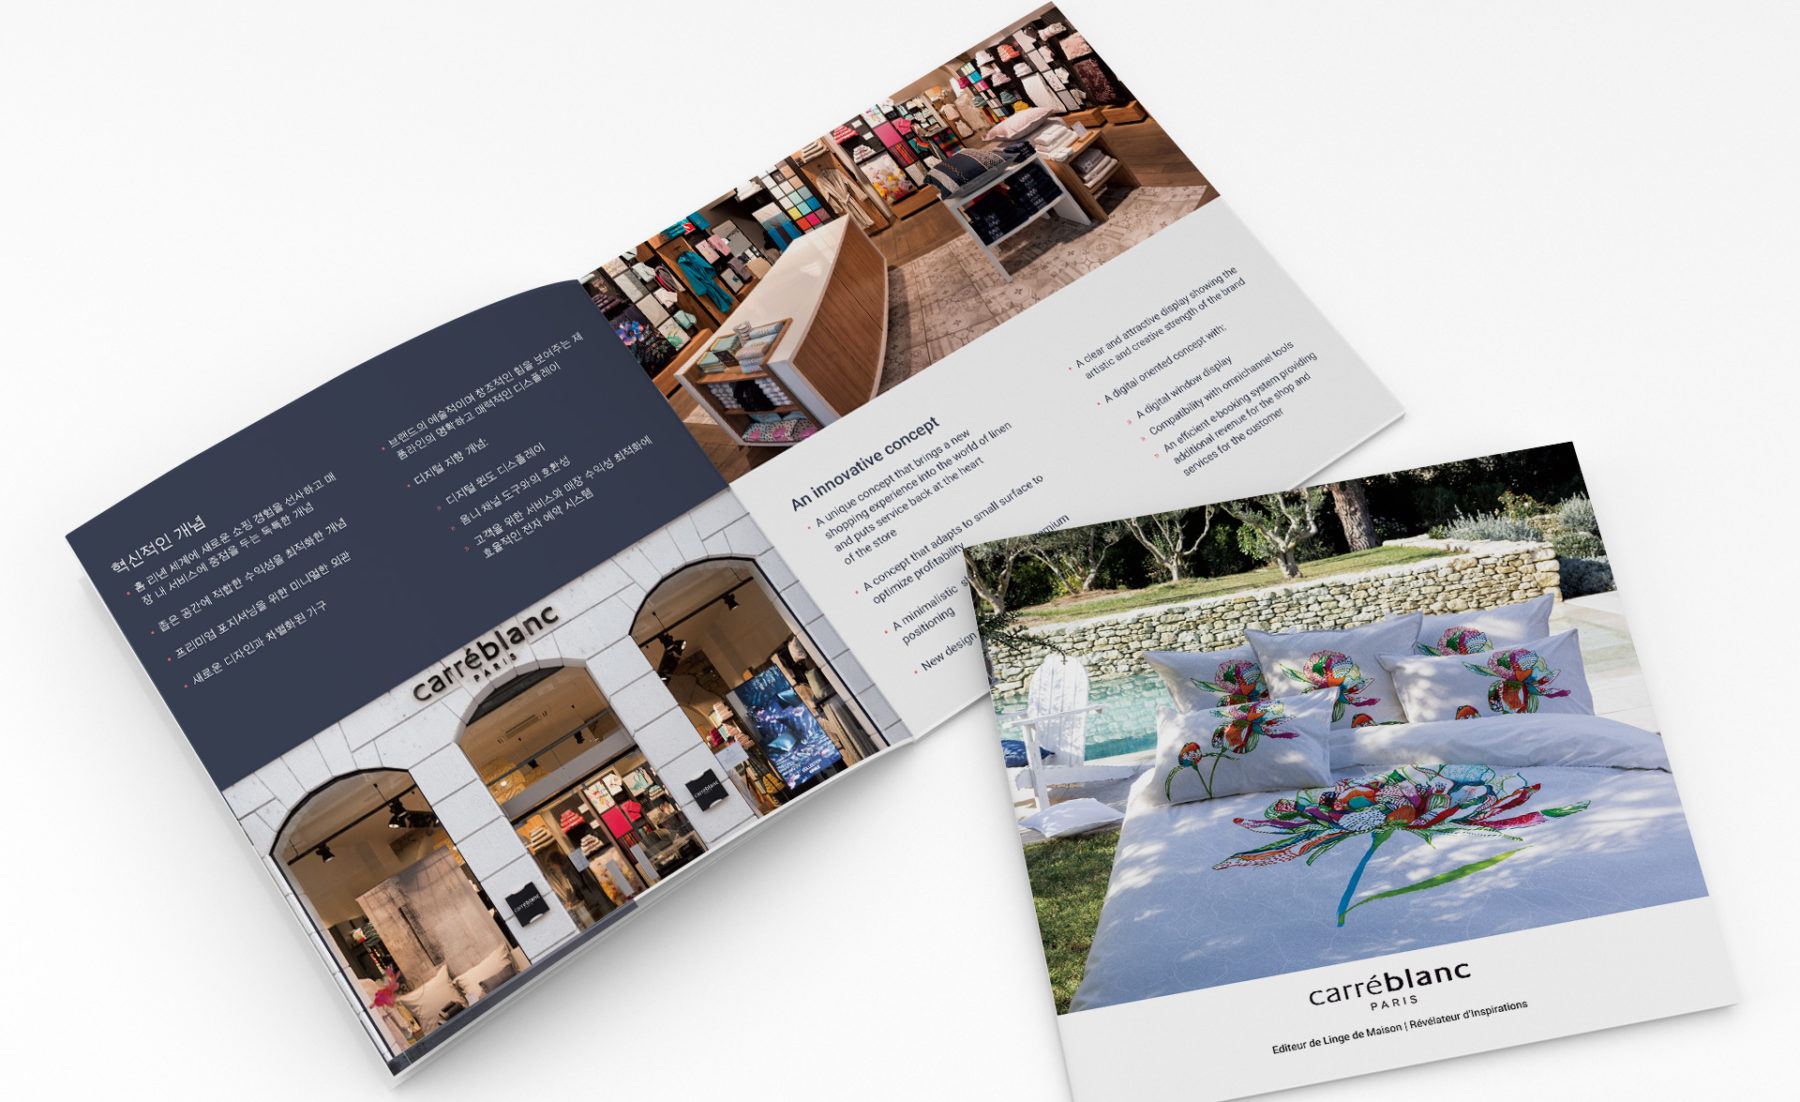 Carré blanc's brochure designed by MADMINT